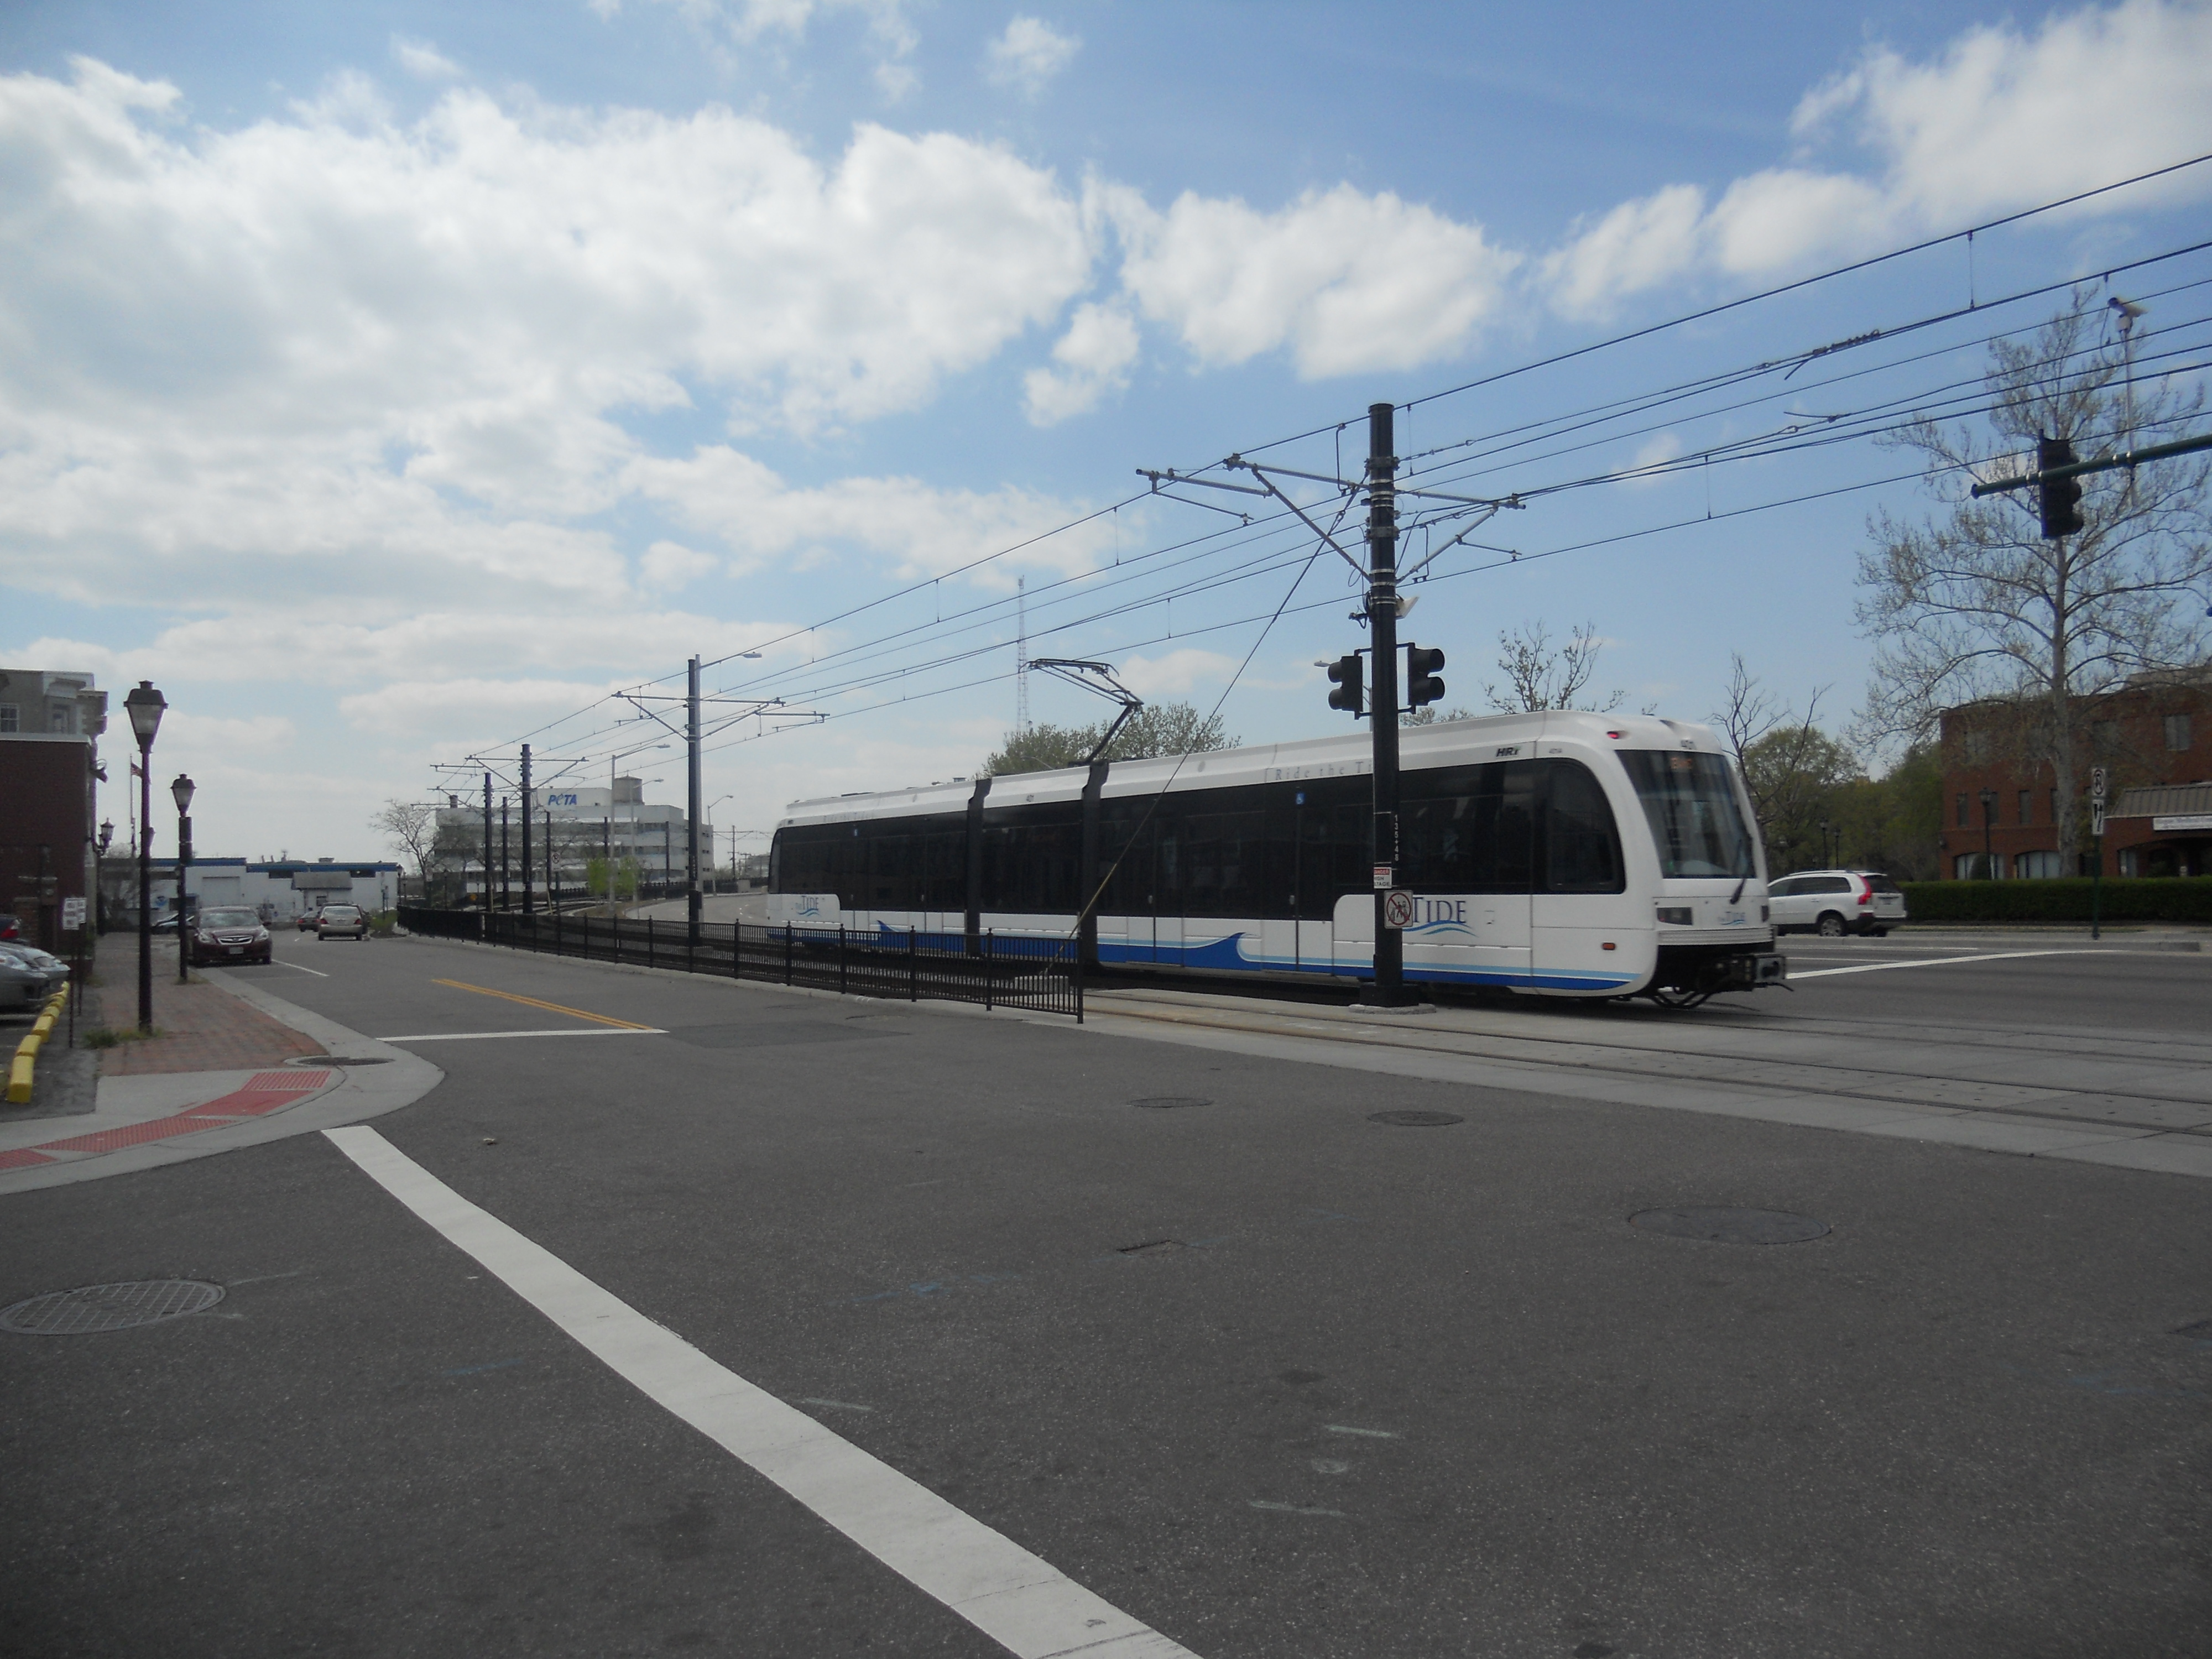 If a plan to eliminate the Eastern Virginia Medical Center loop segment of Route 44 goes through, the direct connection between the bus route and the Tide LRT could be lost. Photo Credit: HARTride 2012.